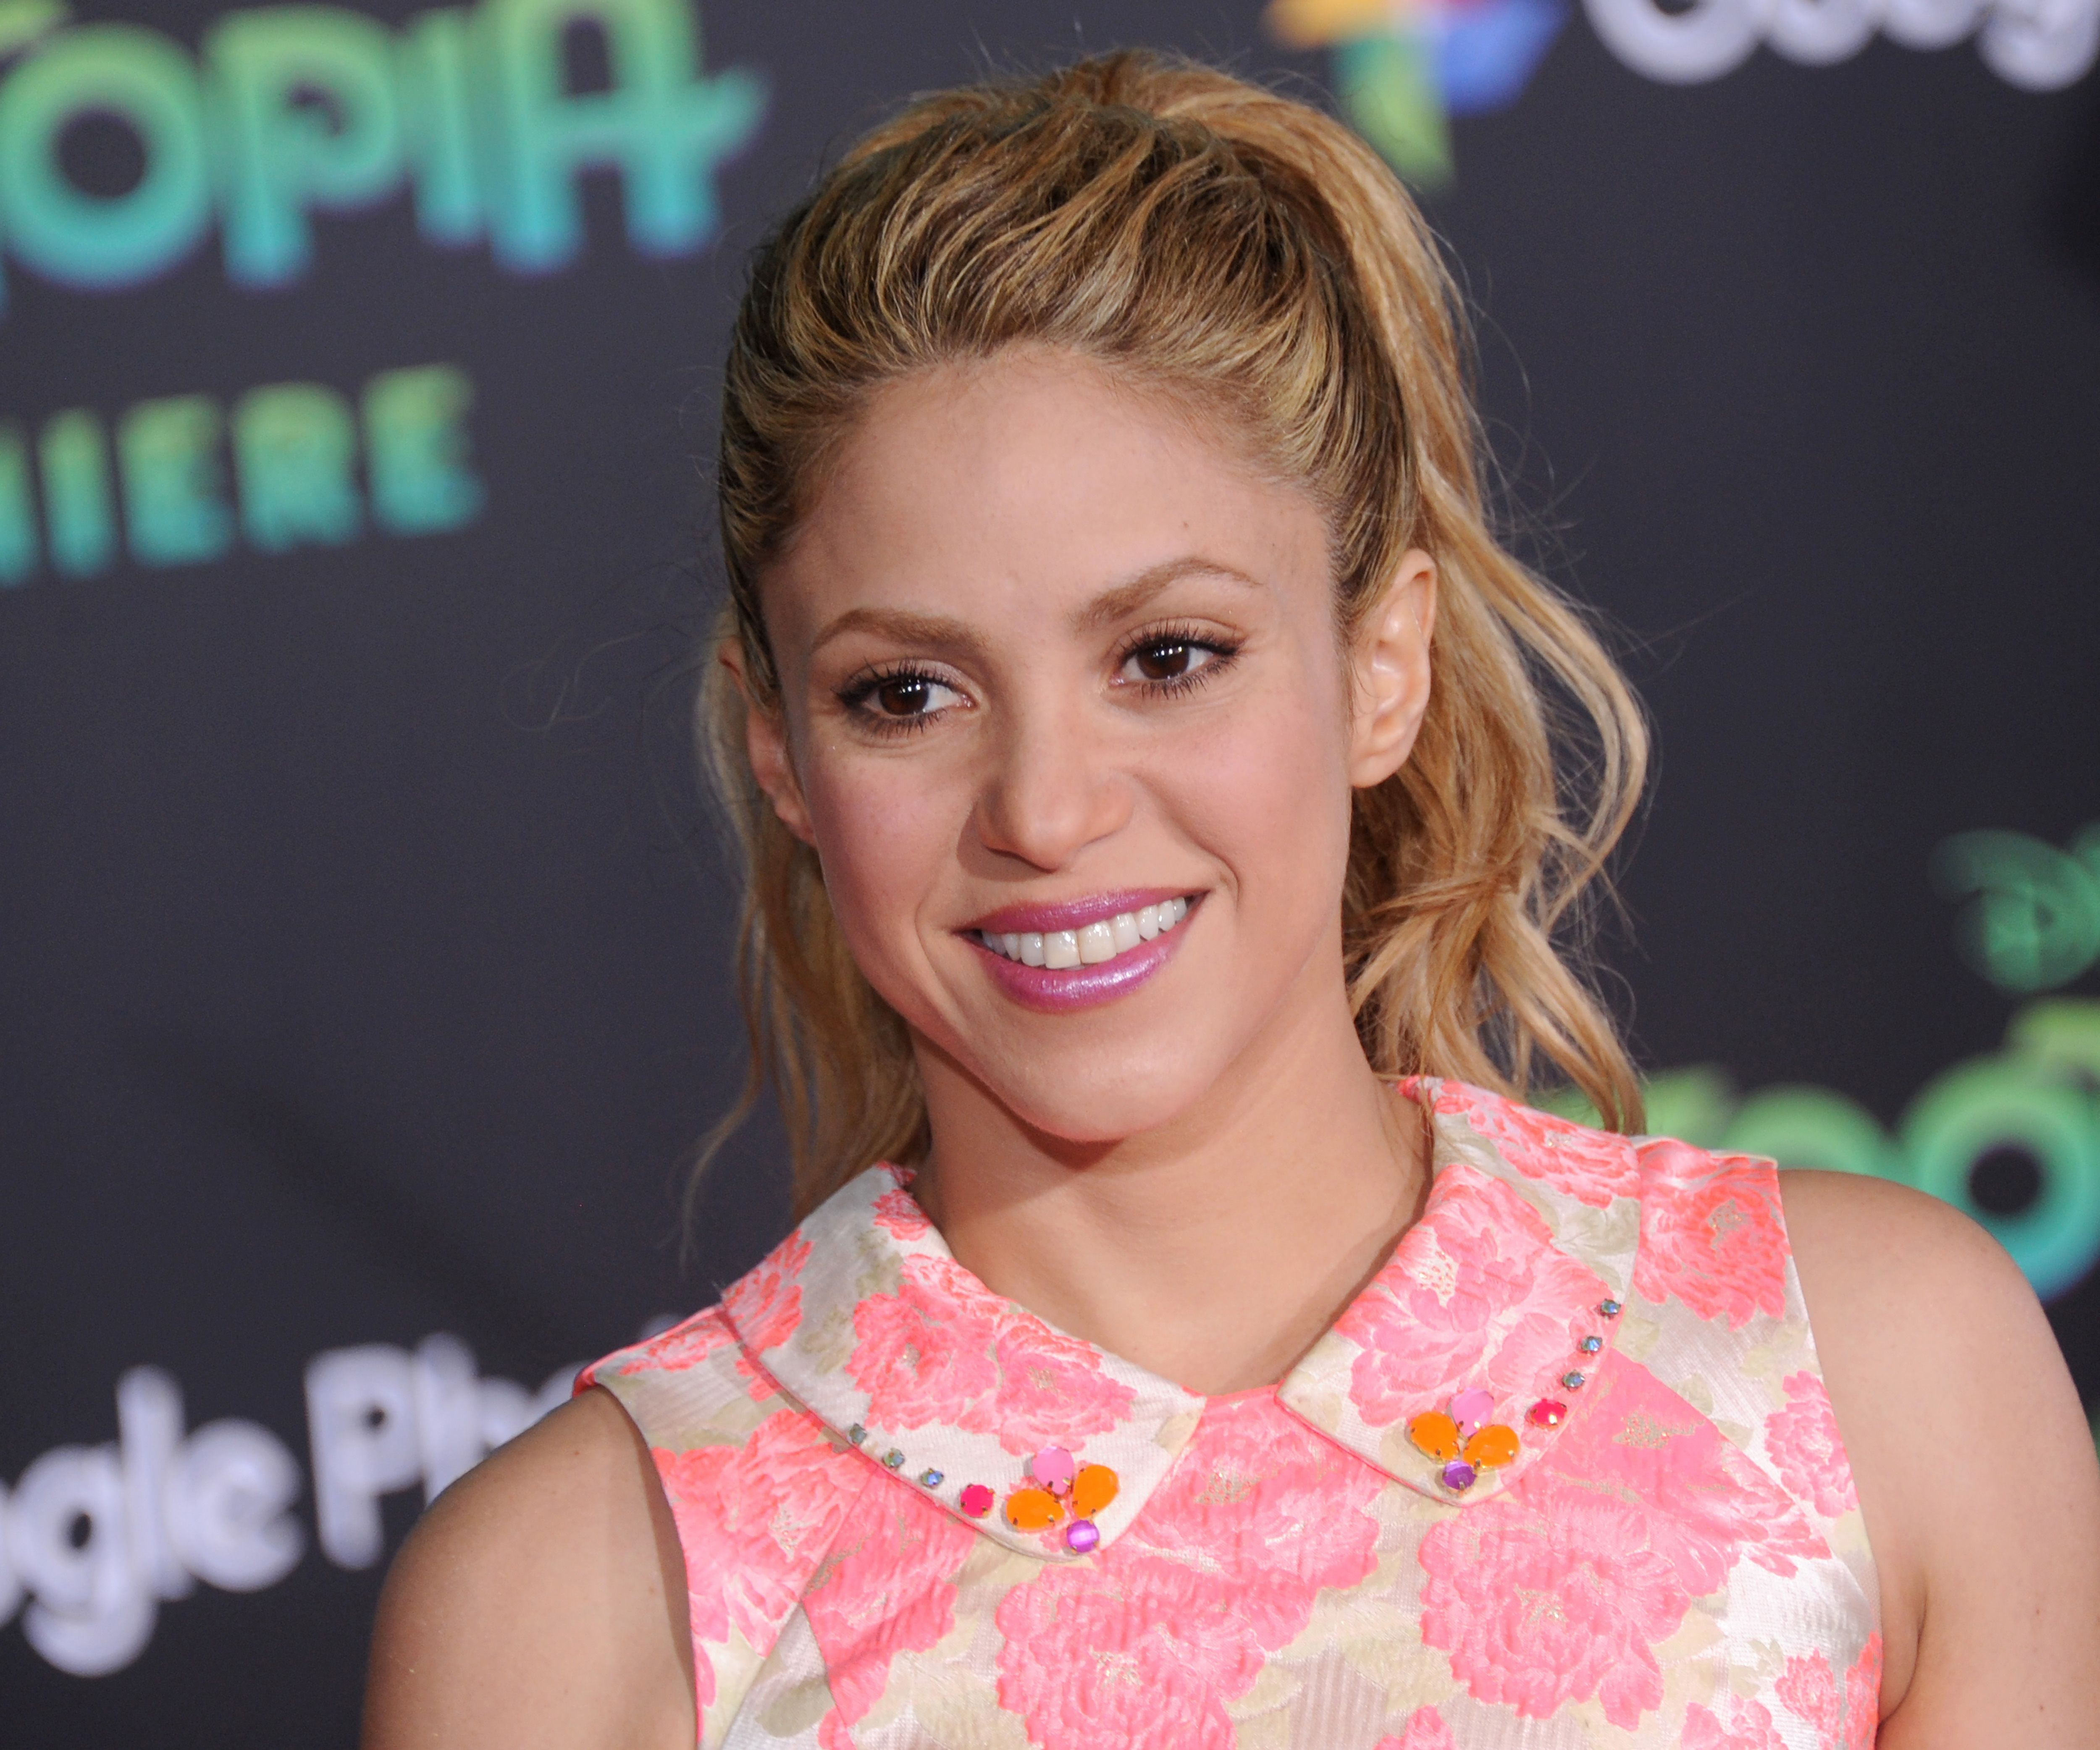 37 Shakira-Approved Health Habits You Can Totally Steal